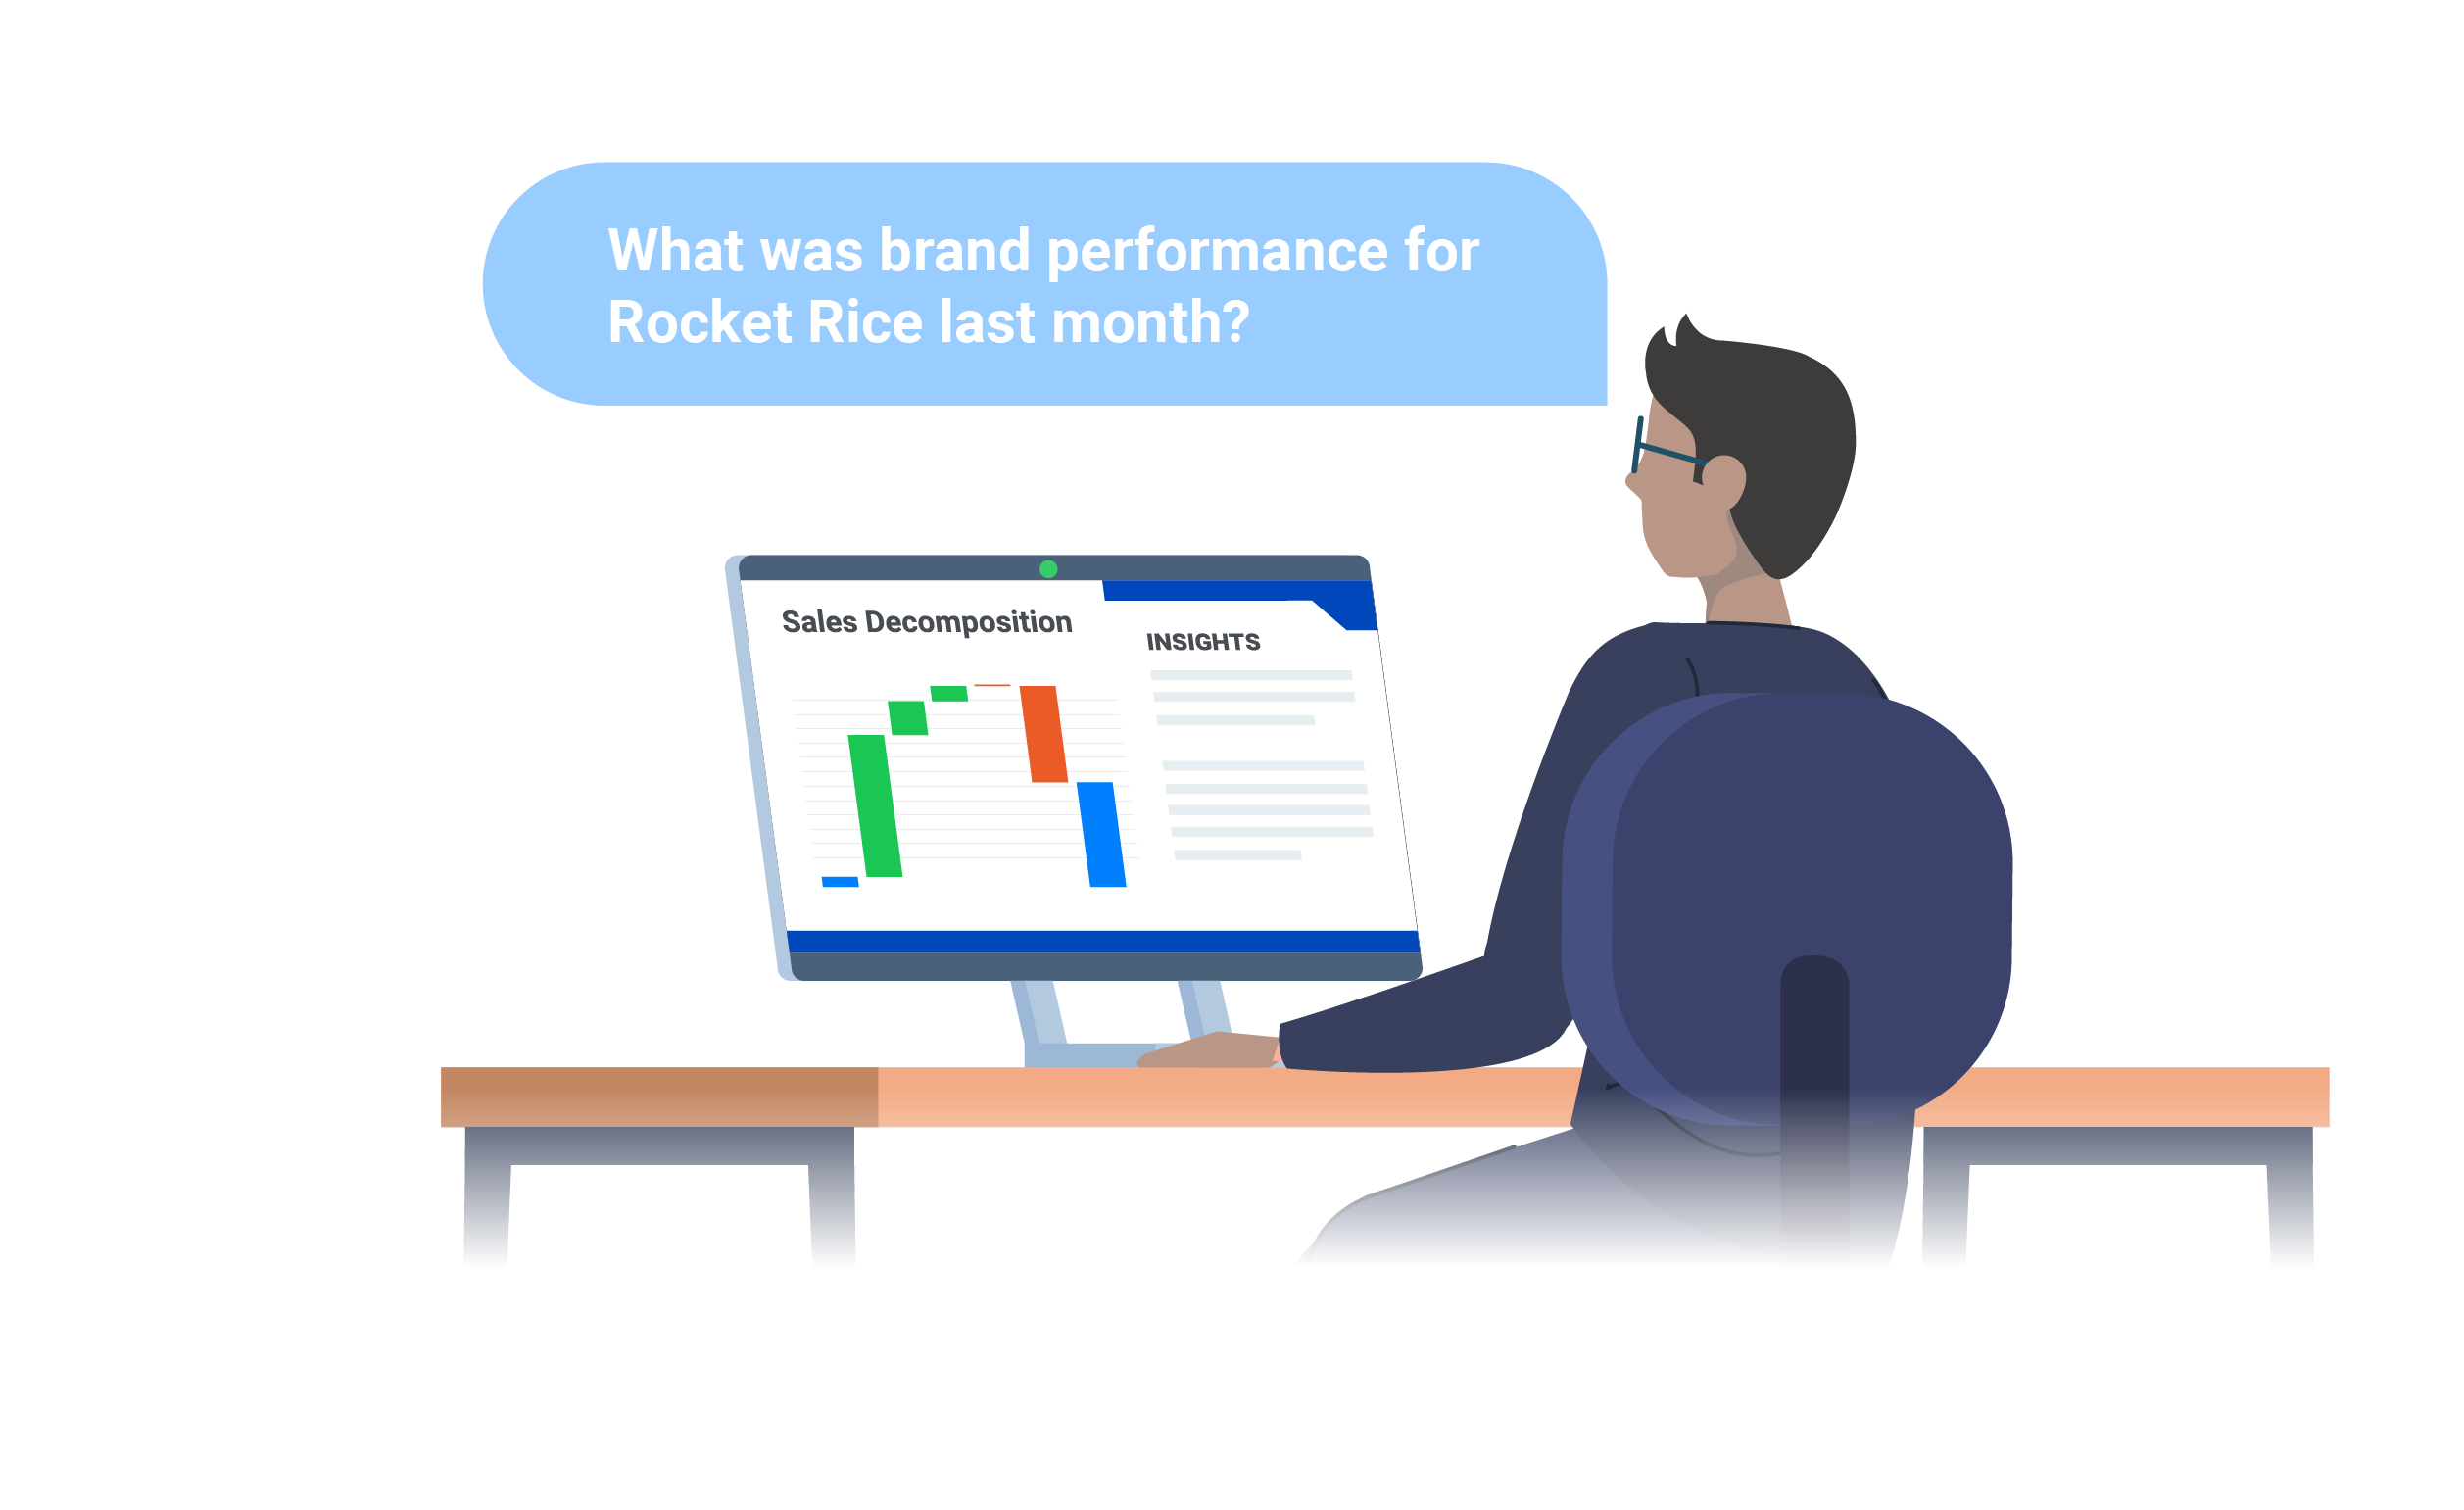 Ask questions like ``what was brand performance of rocket rice last month?``